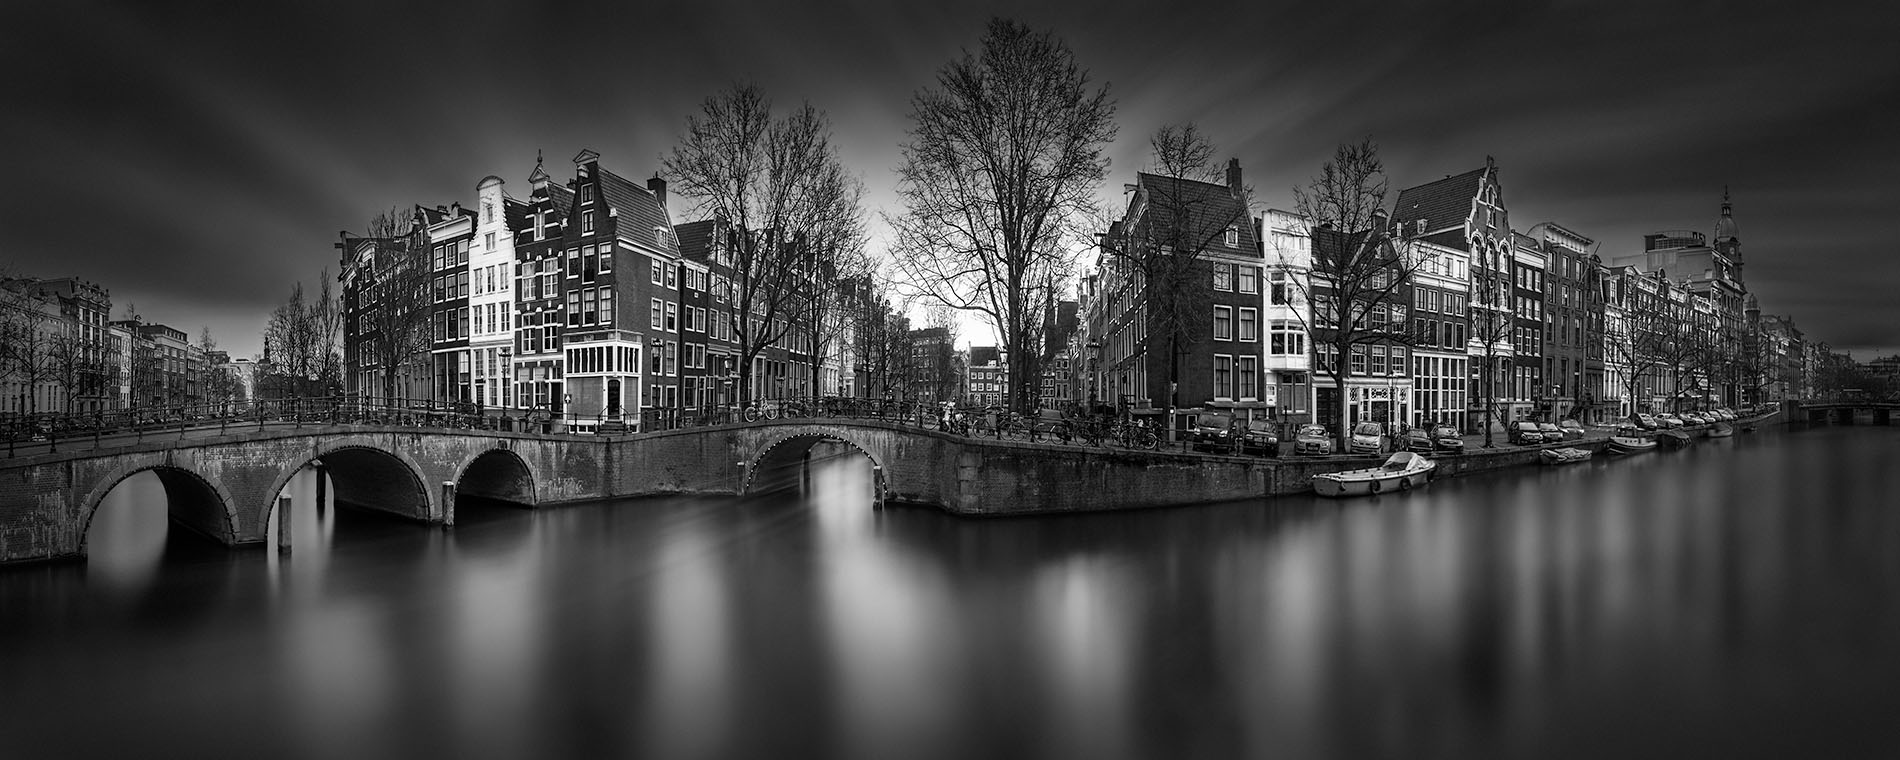 A Tale of the Past I - Keizersgracht Canal Amsterdam - © Julia Anna Gospodarou 2017